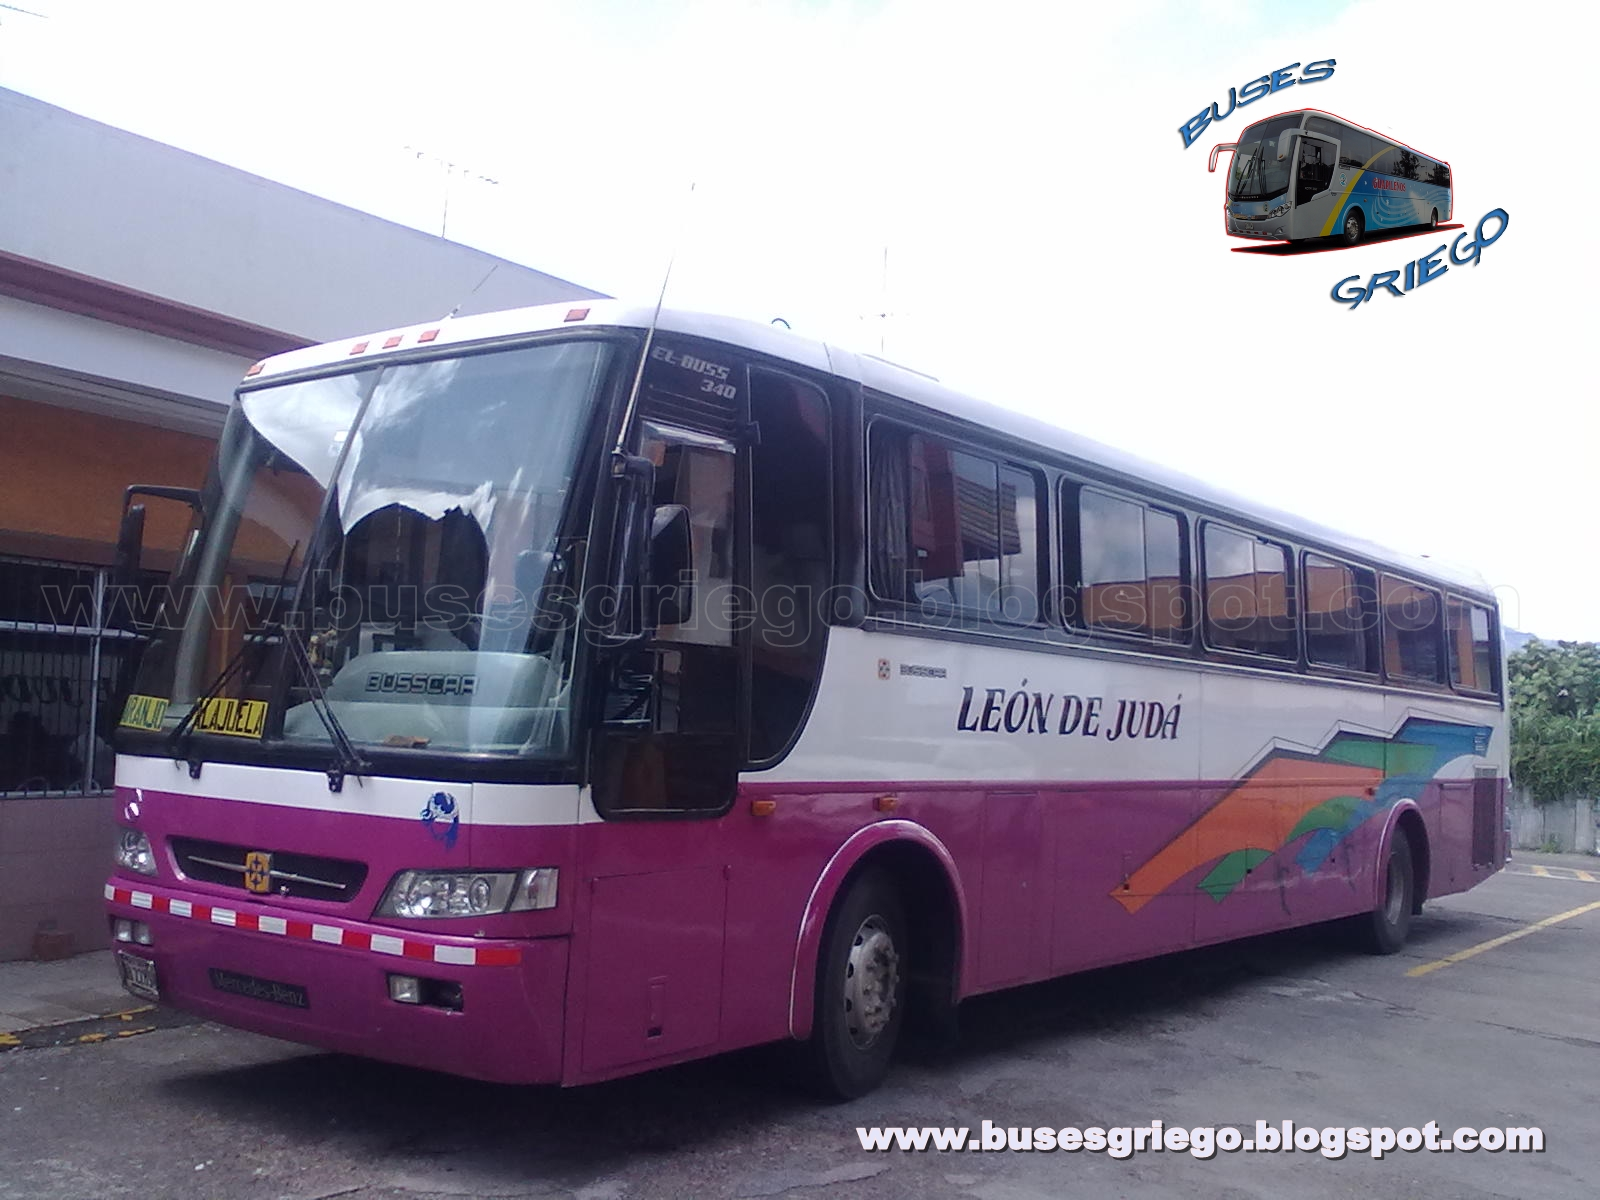 Buses griego galeria 16 31 10 10 for Mercedes benz of san jose